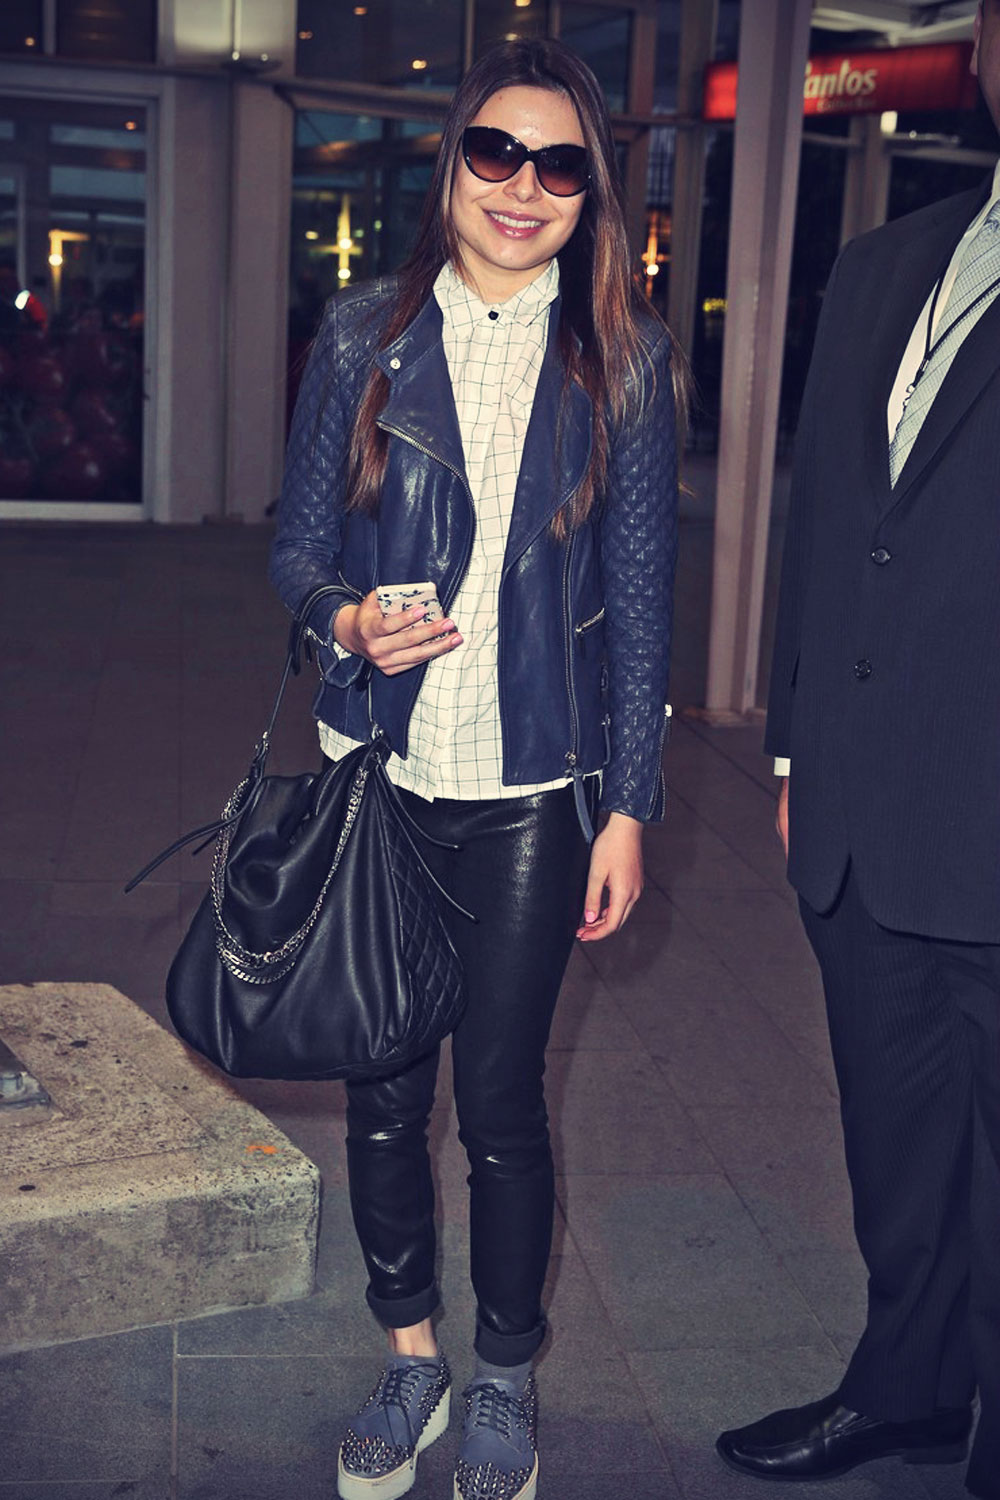 Miranda Cosgrove is all smiles as she makes her way through the airport